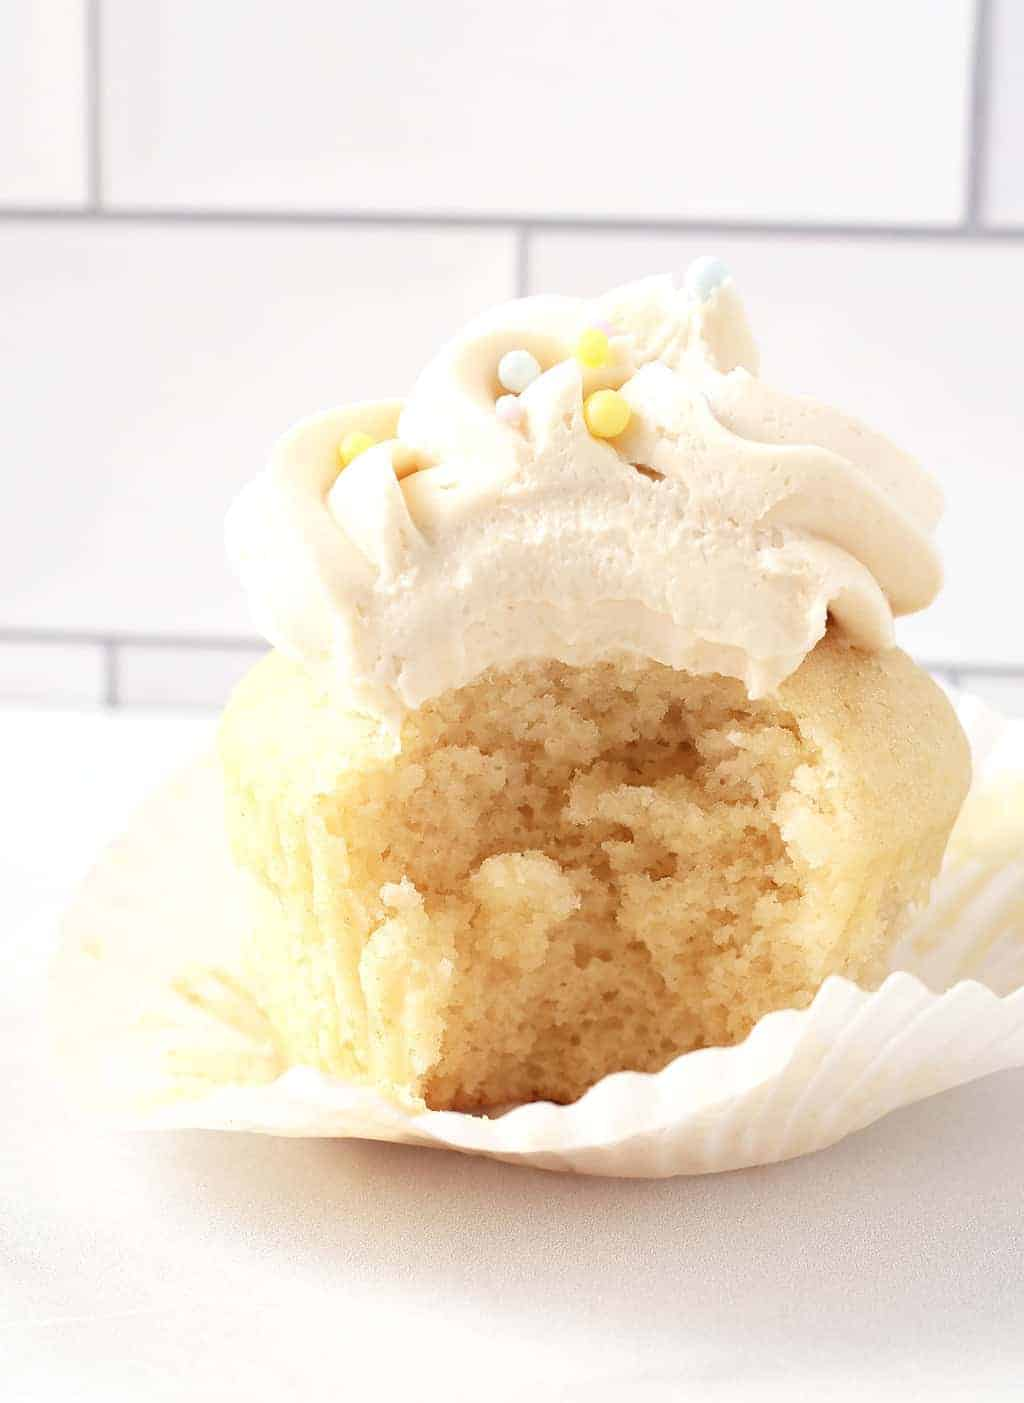 Vegan Vanilla Cupcake with bite